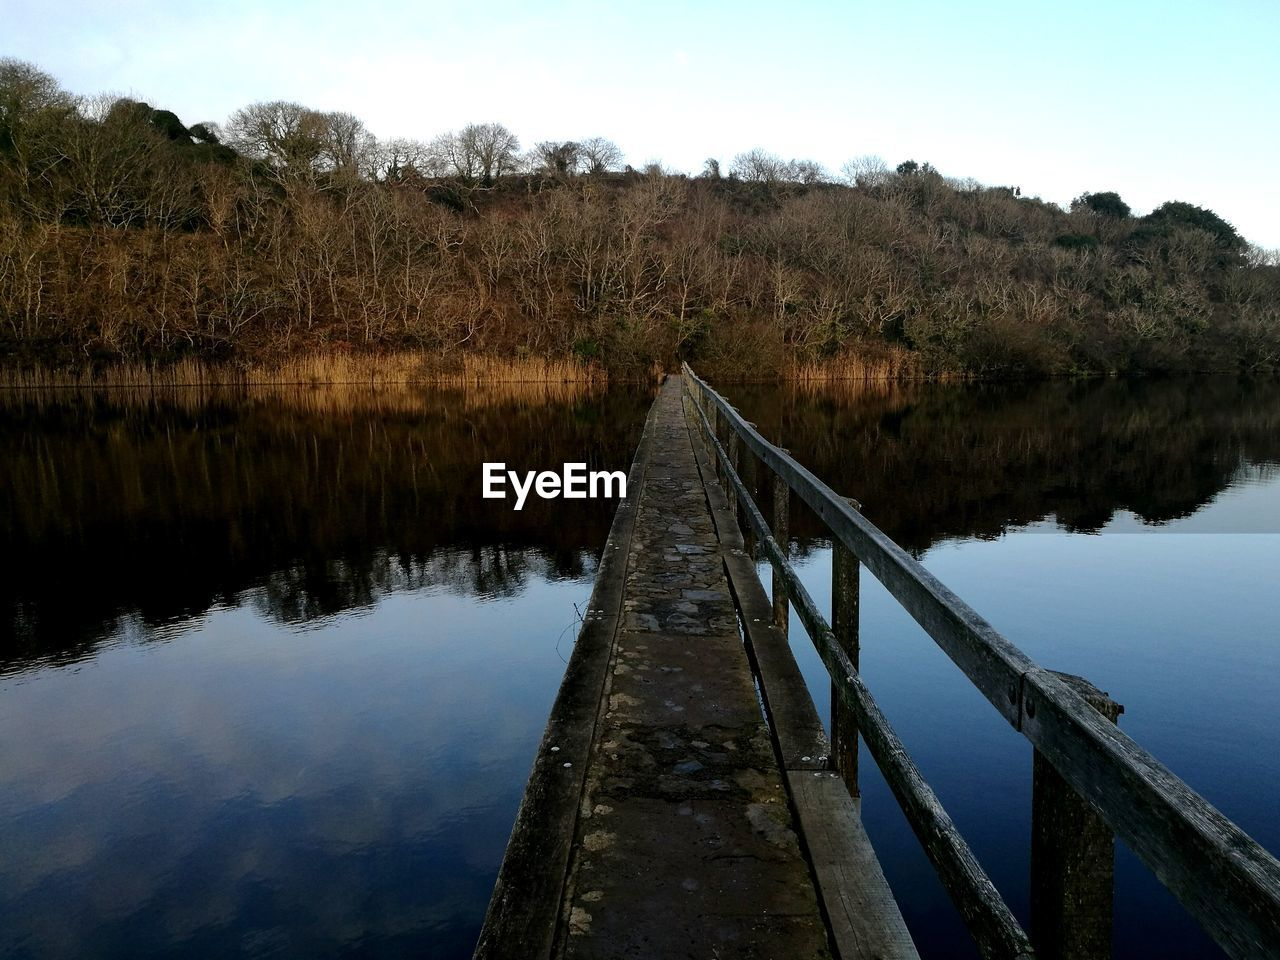 water, tree, nature, lake, no people, outdoors, tranquil scene, scenics, day, tranquility, sky, beauty in nature, bridge - man made structure, built structure